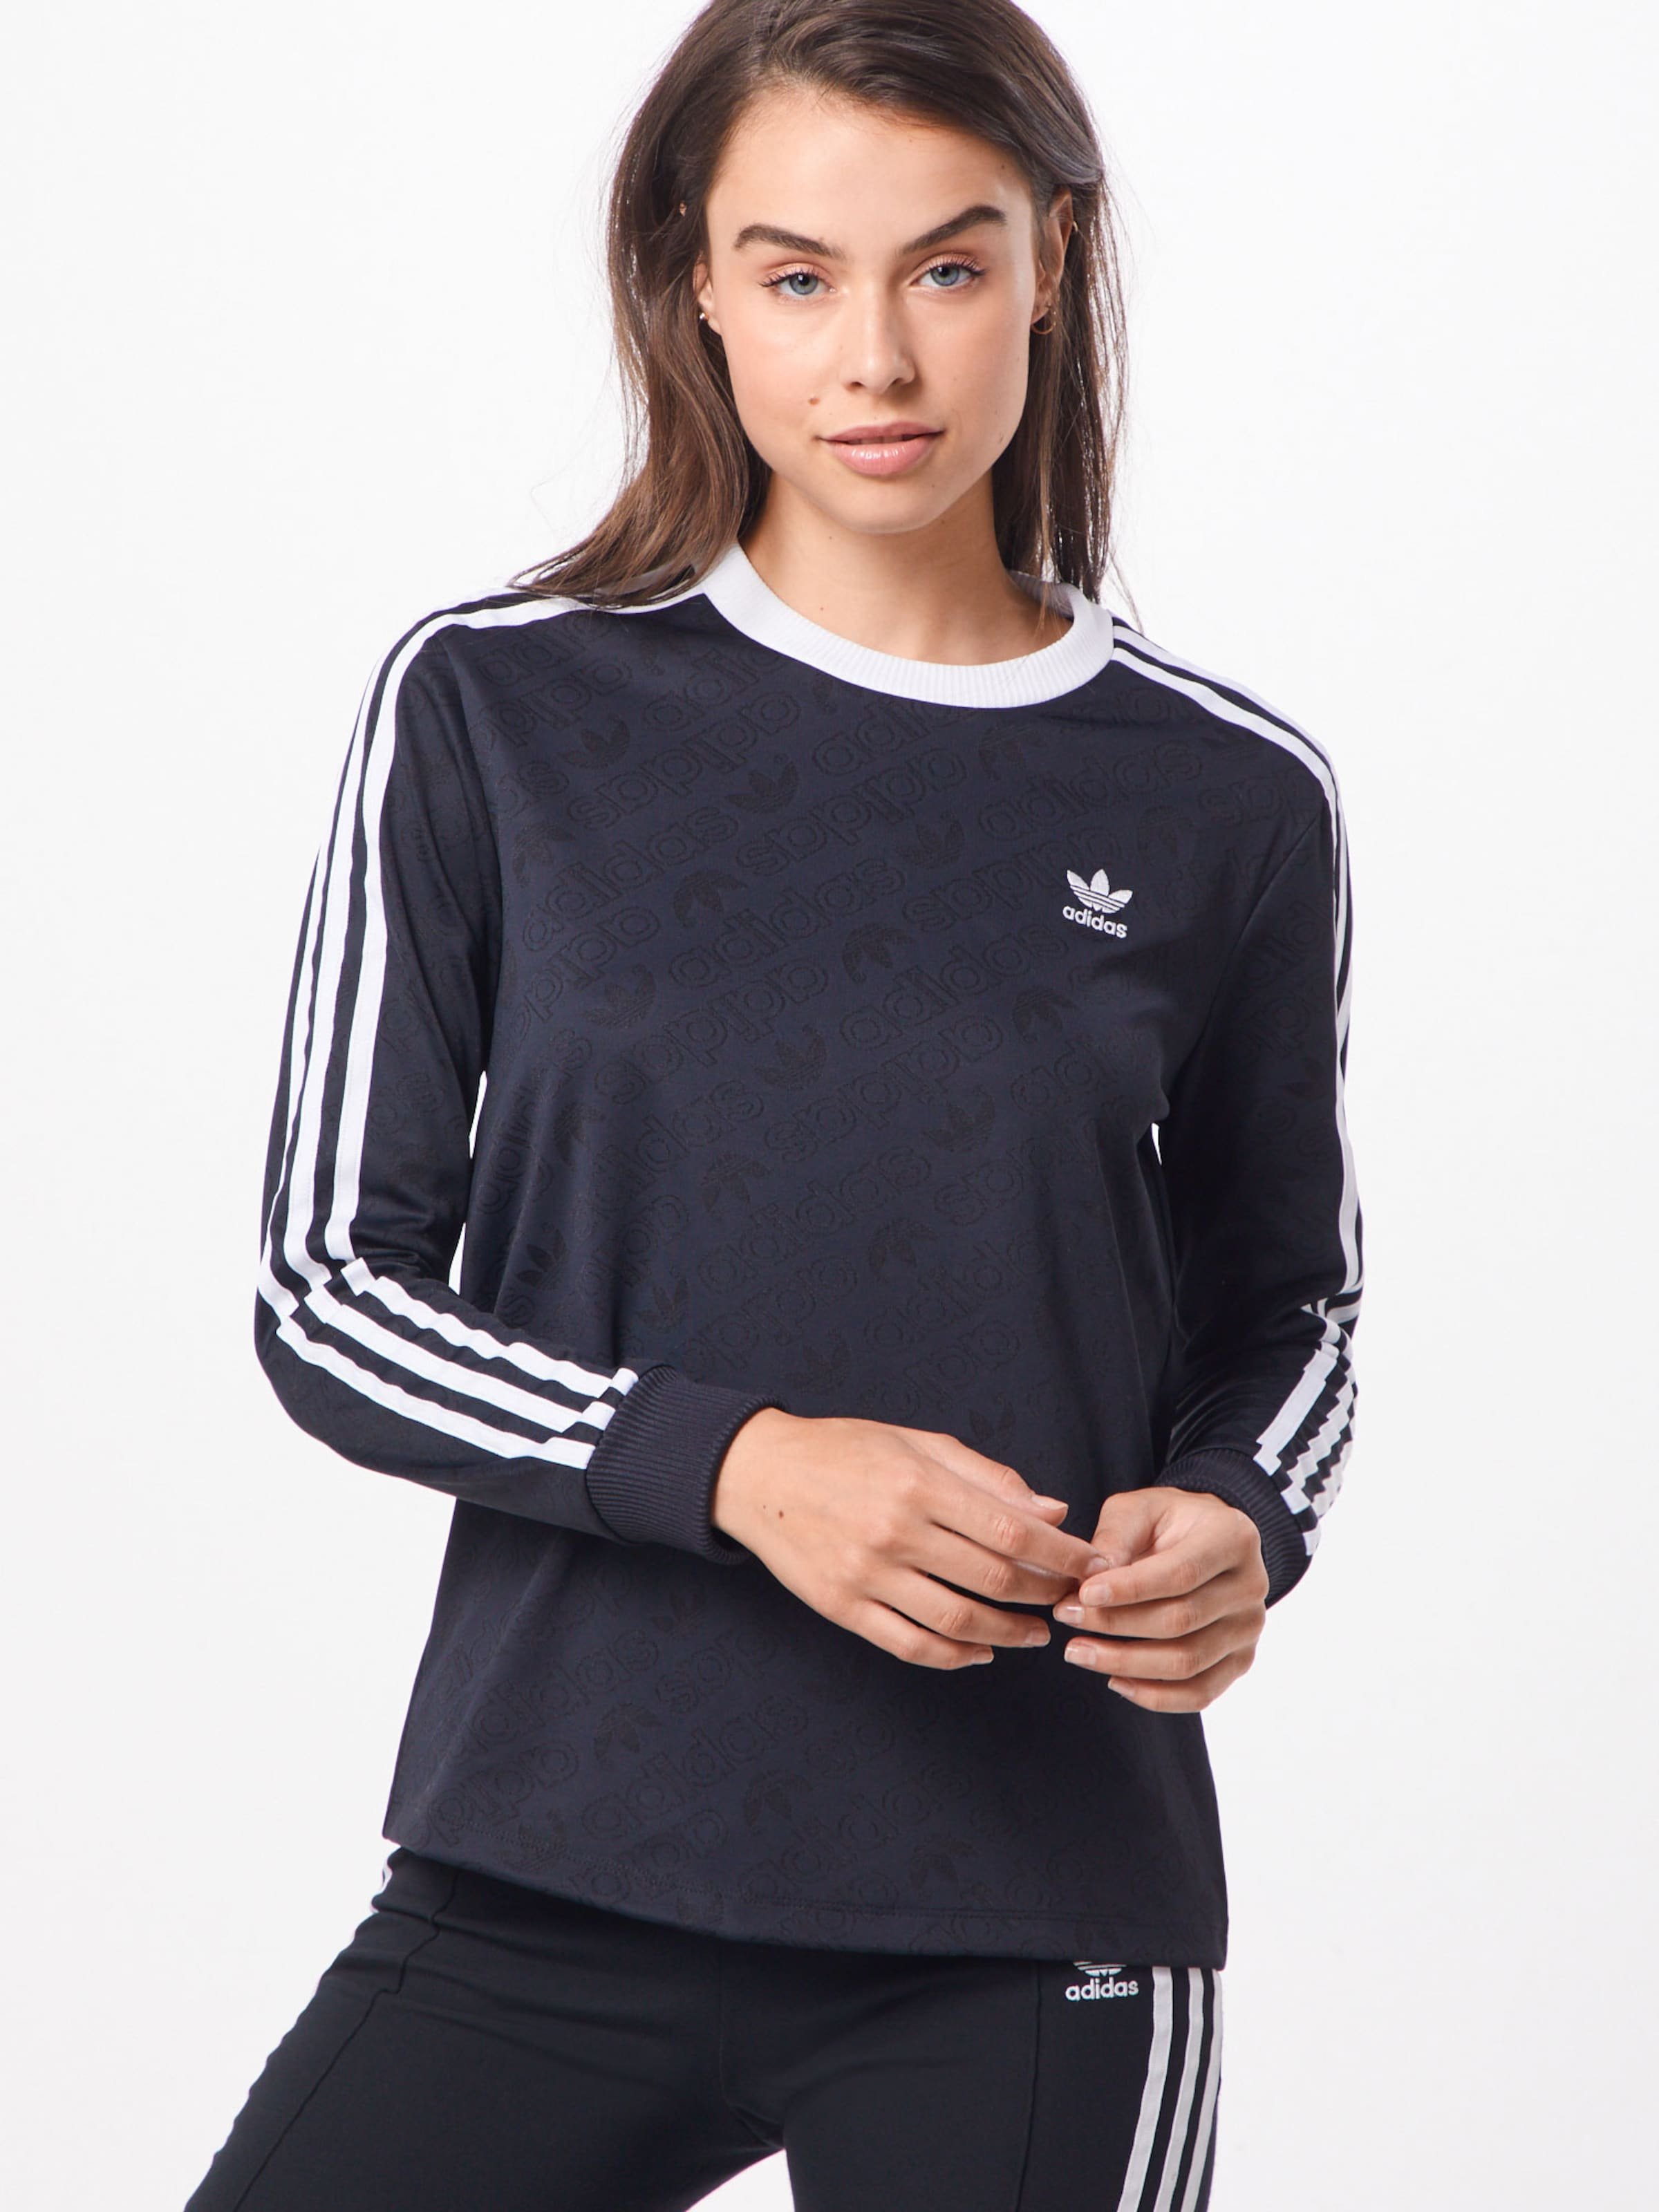 In In Originals In Adidas Adidas Shirt Shirt Schwarz Originals Originals Shirt Adidas Schwarz dxQWrBeCo